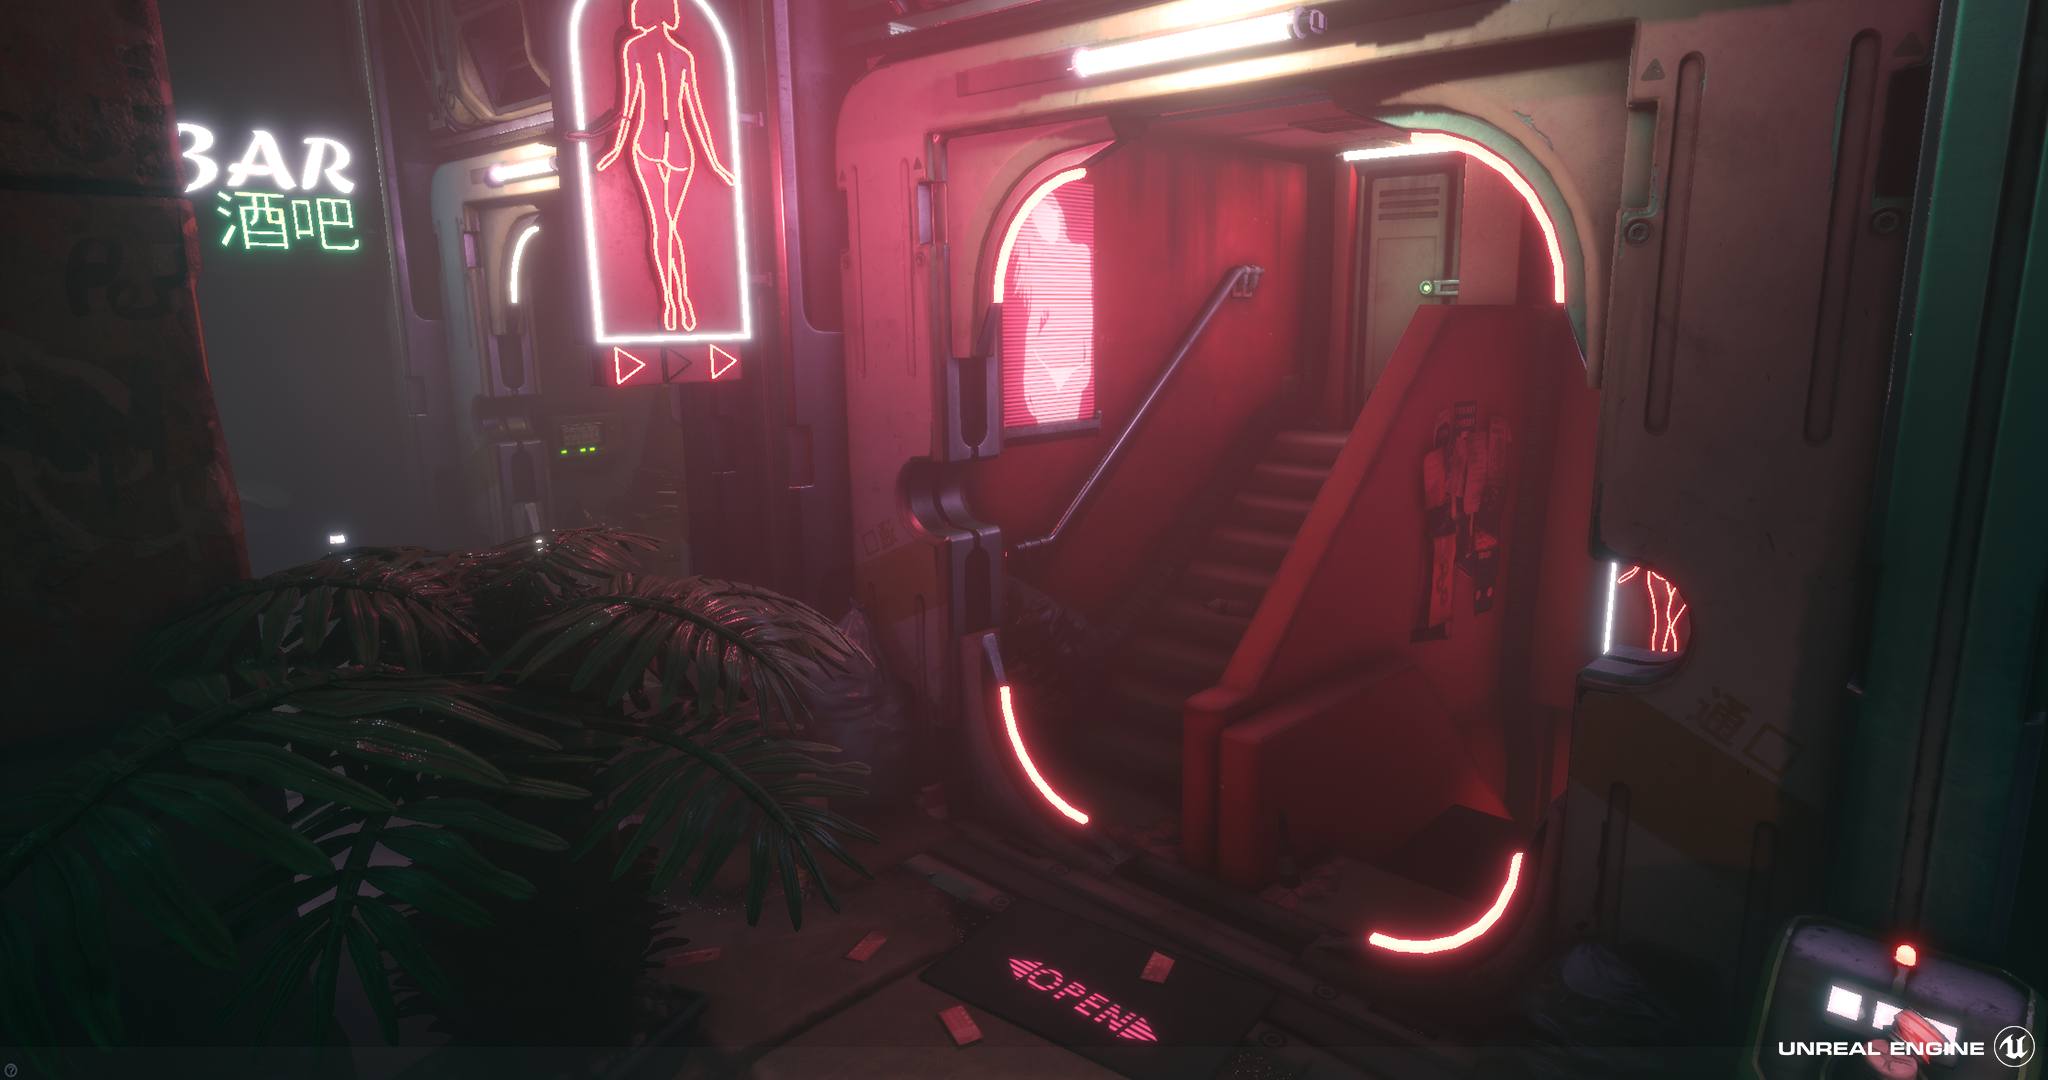 City Bowels (Cyberpunk Environment) by fightingsharpie for